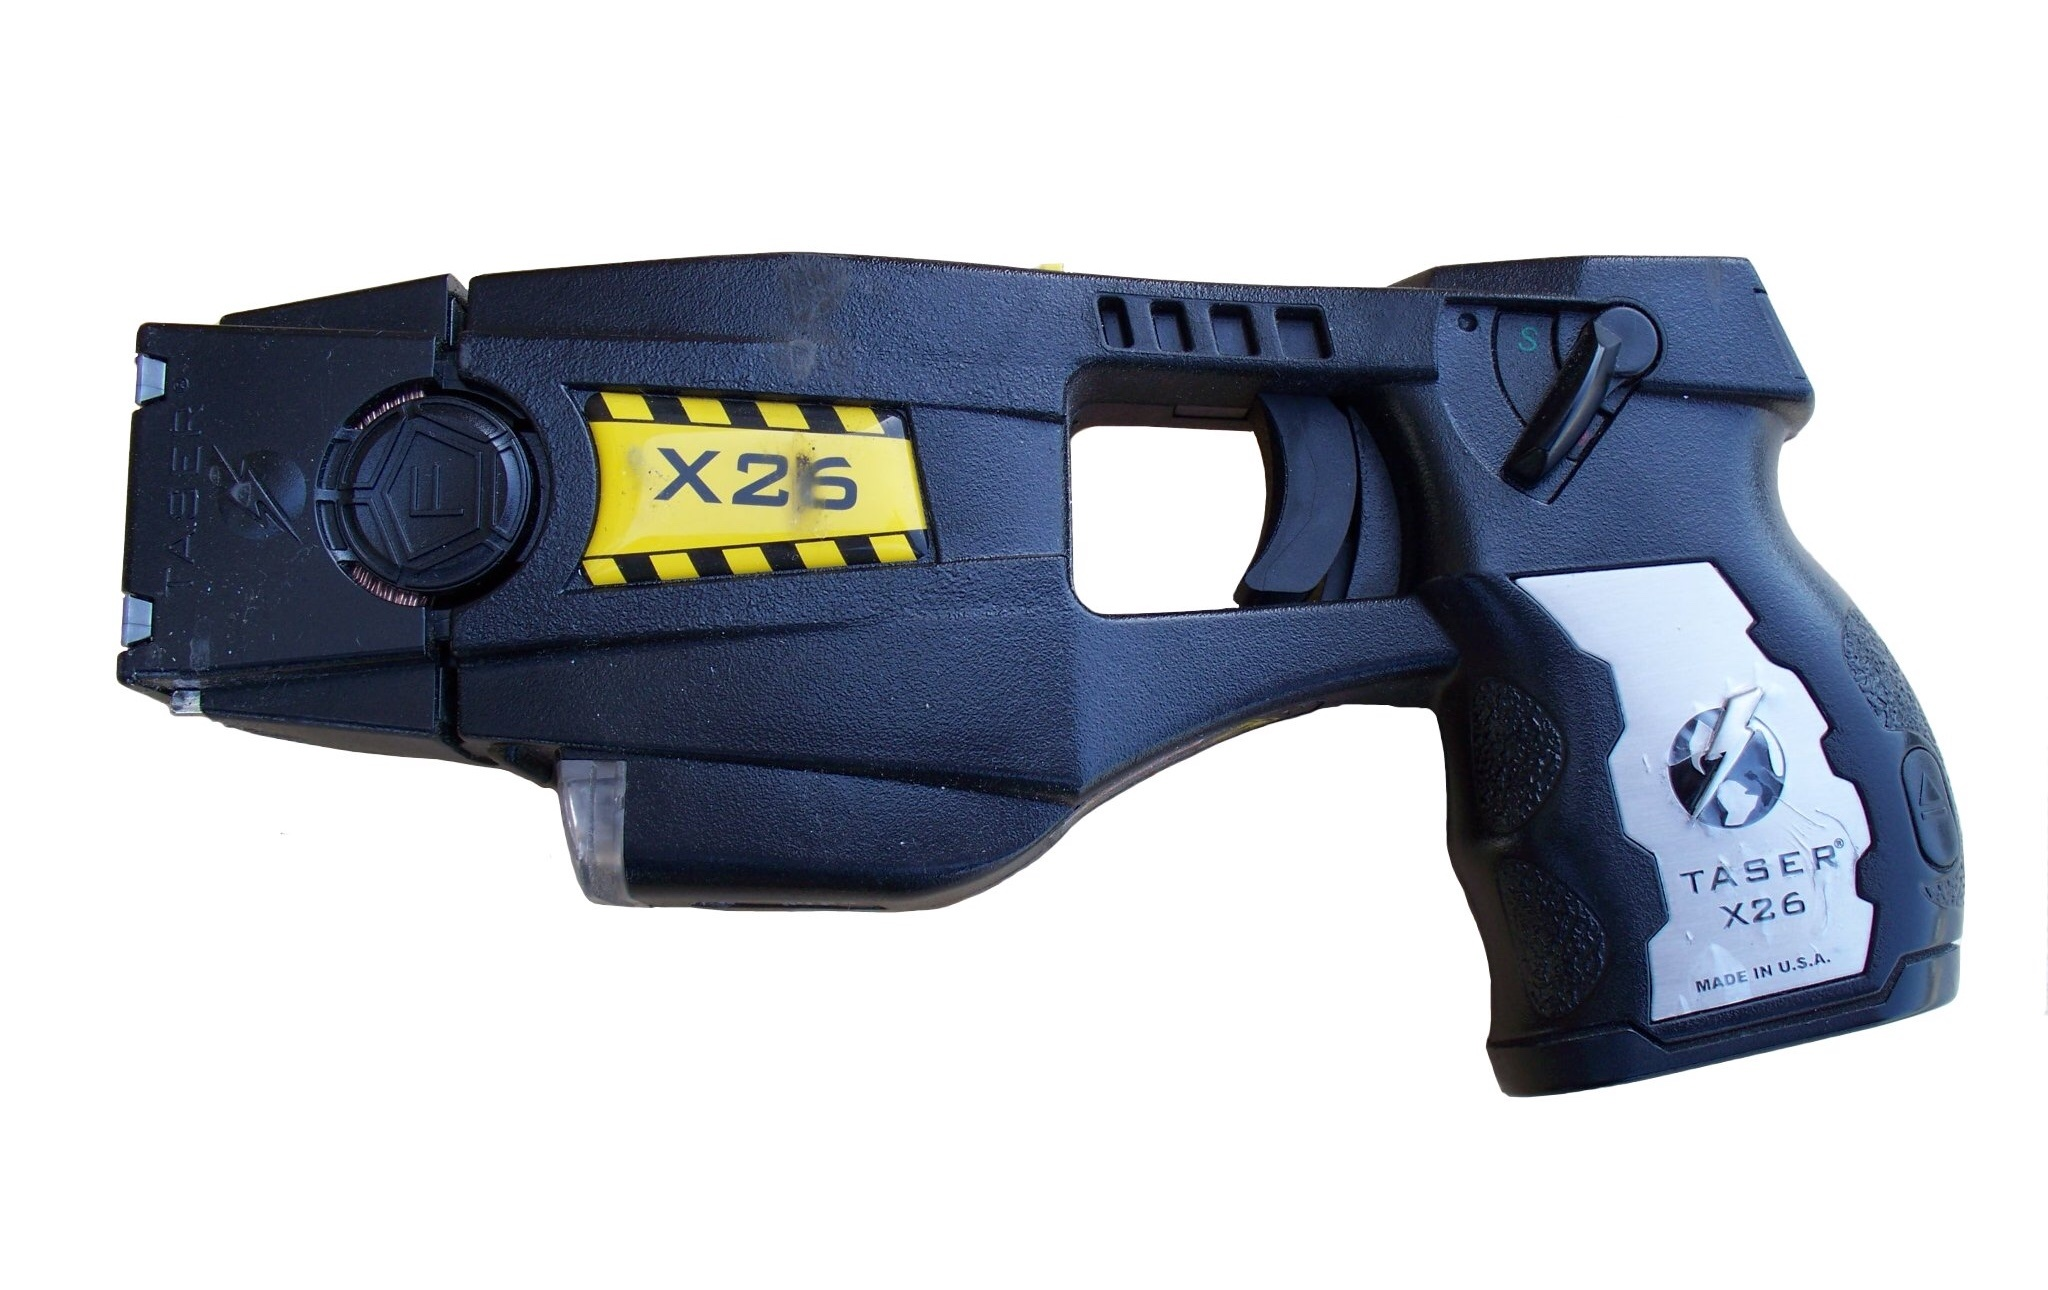 Under 2A lawsuit pressure, Hawaii to legalize tasers